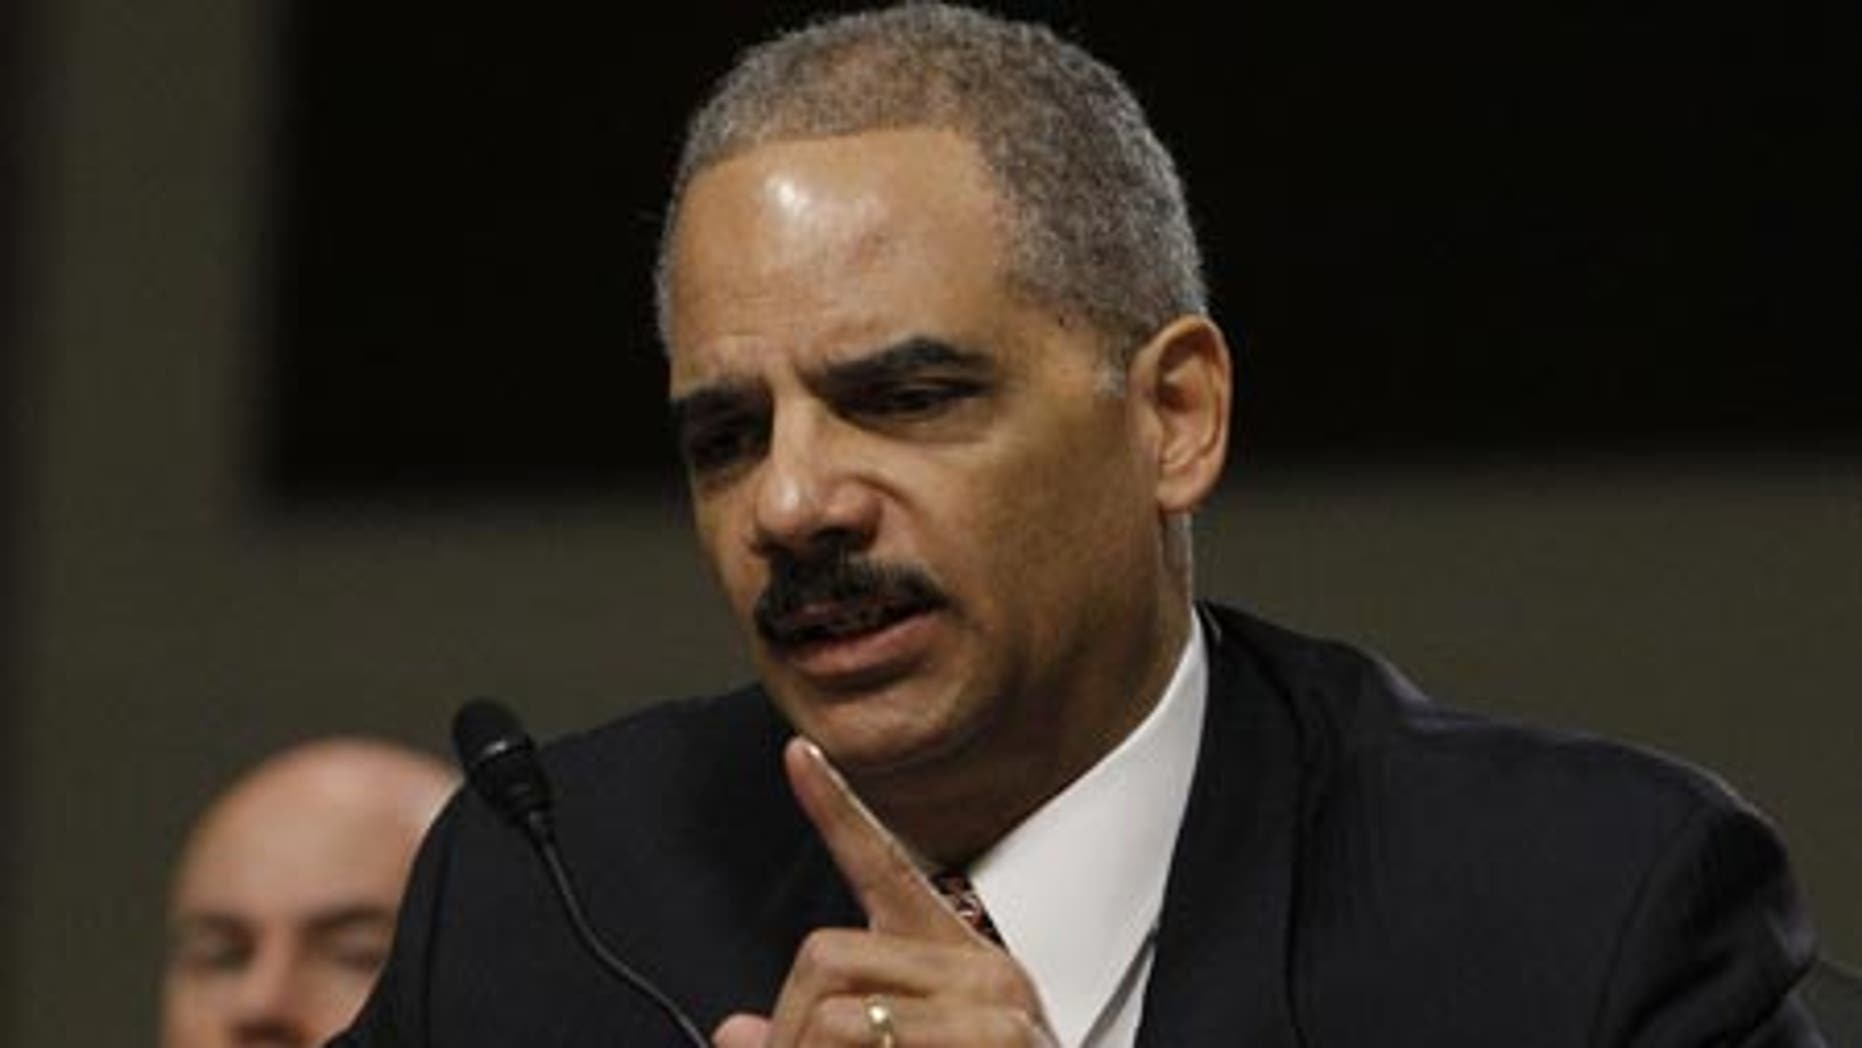 Attorney General Eric Holder was on the Congressional hot seat for his decision to have the trial of the 9/11 conspirators in New York City.